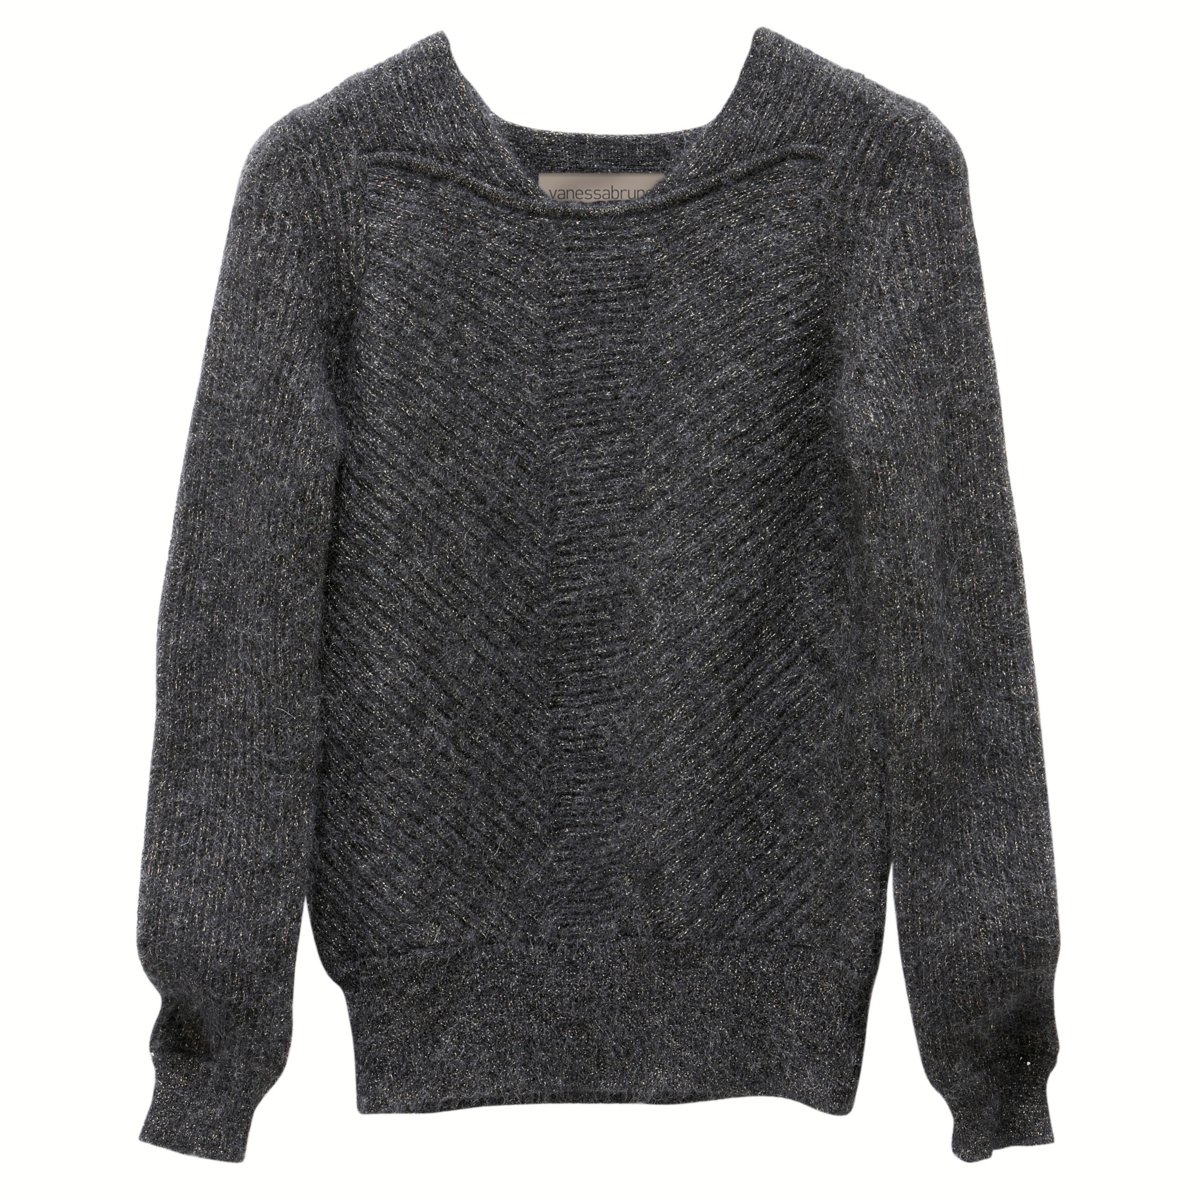 Pull mohair | La Redoute